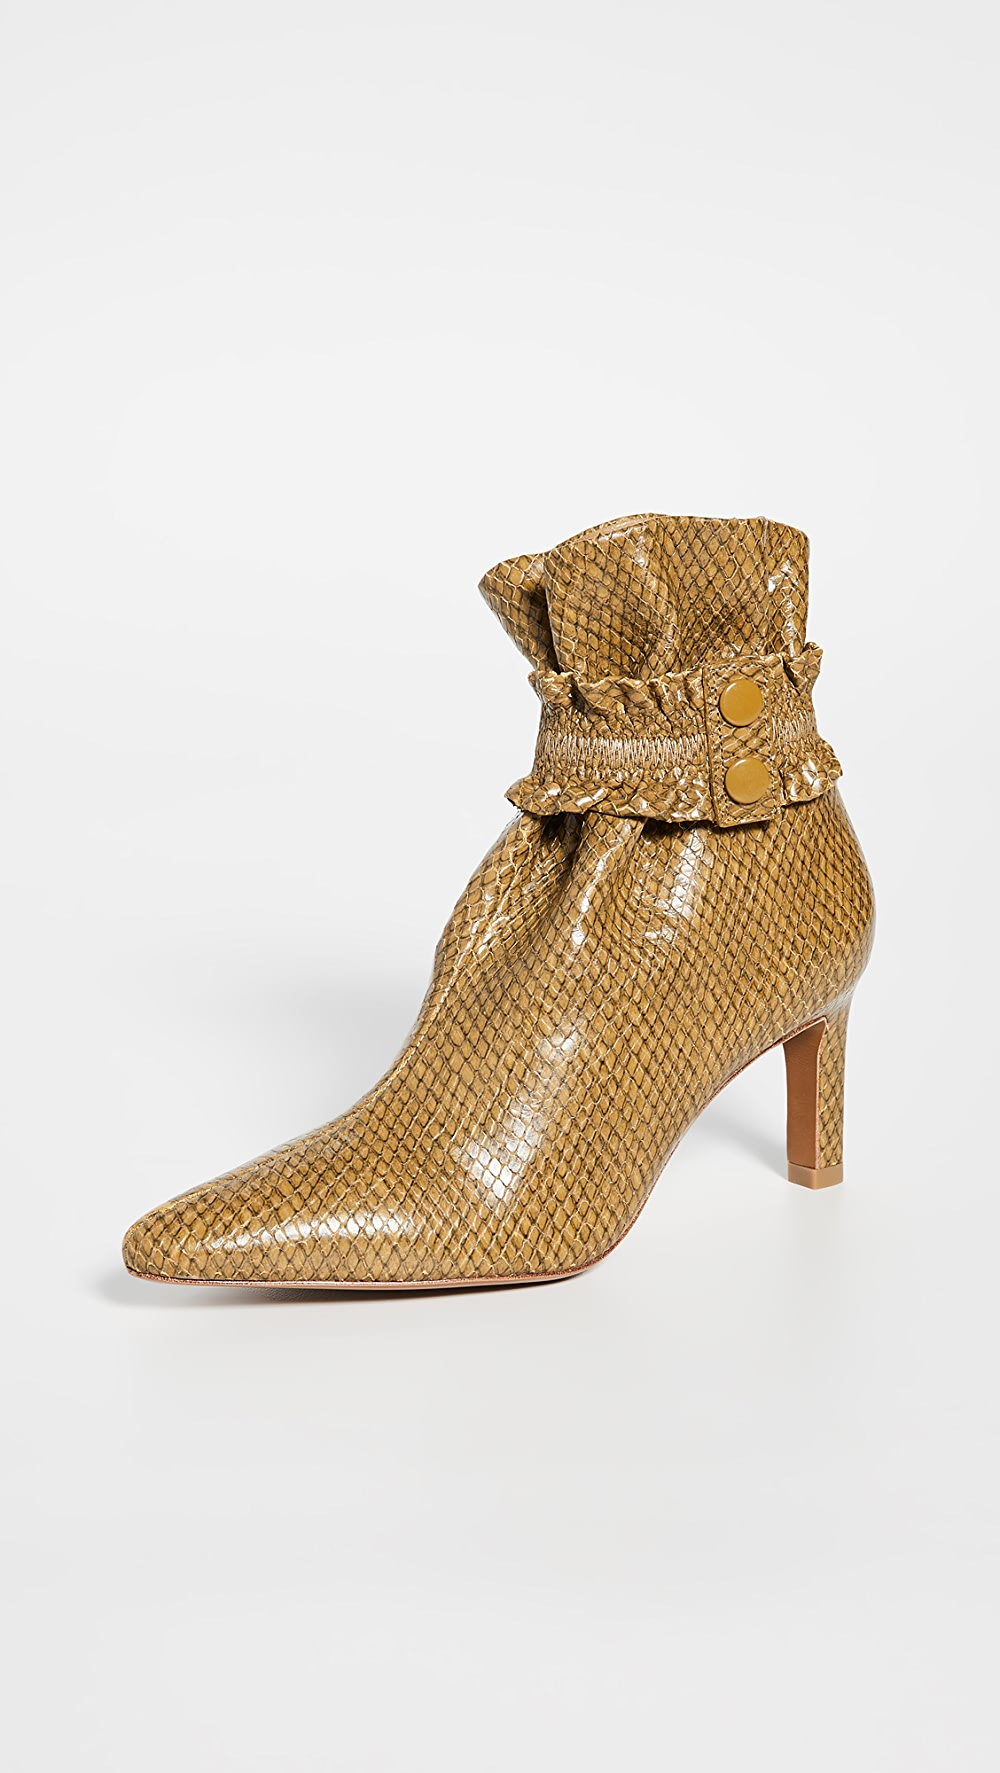 Aggressive Zimmermann - Sock Booties 2019 New Fashion Style Online